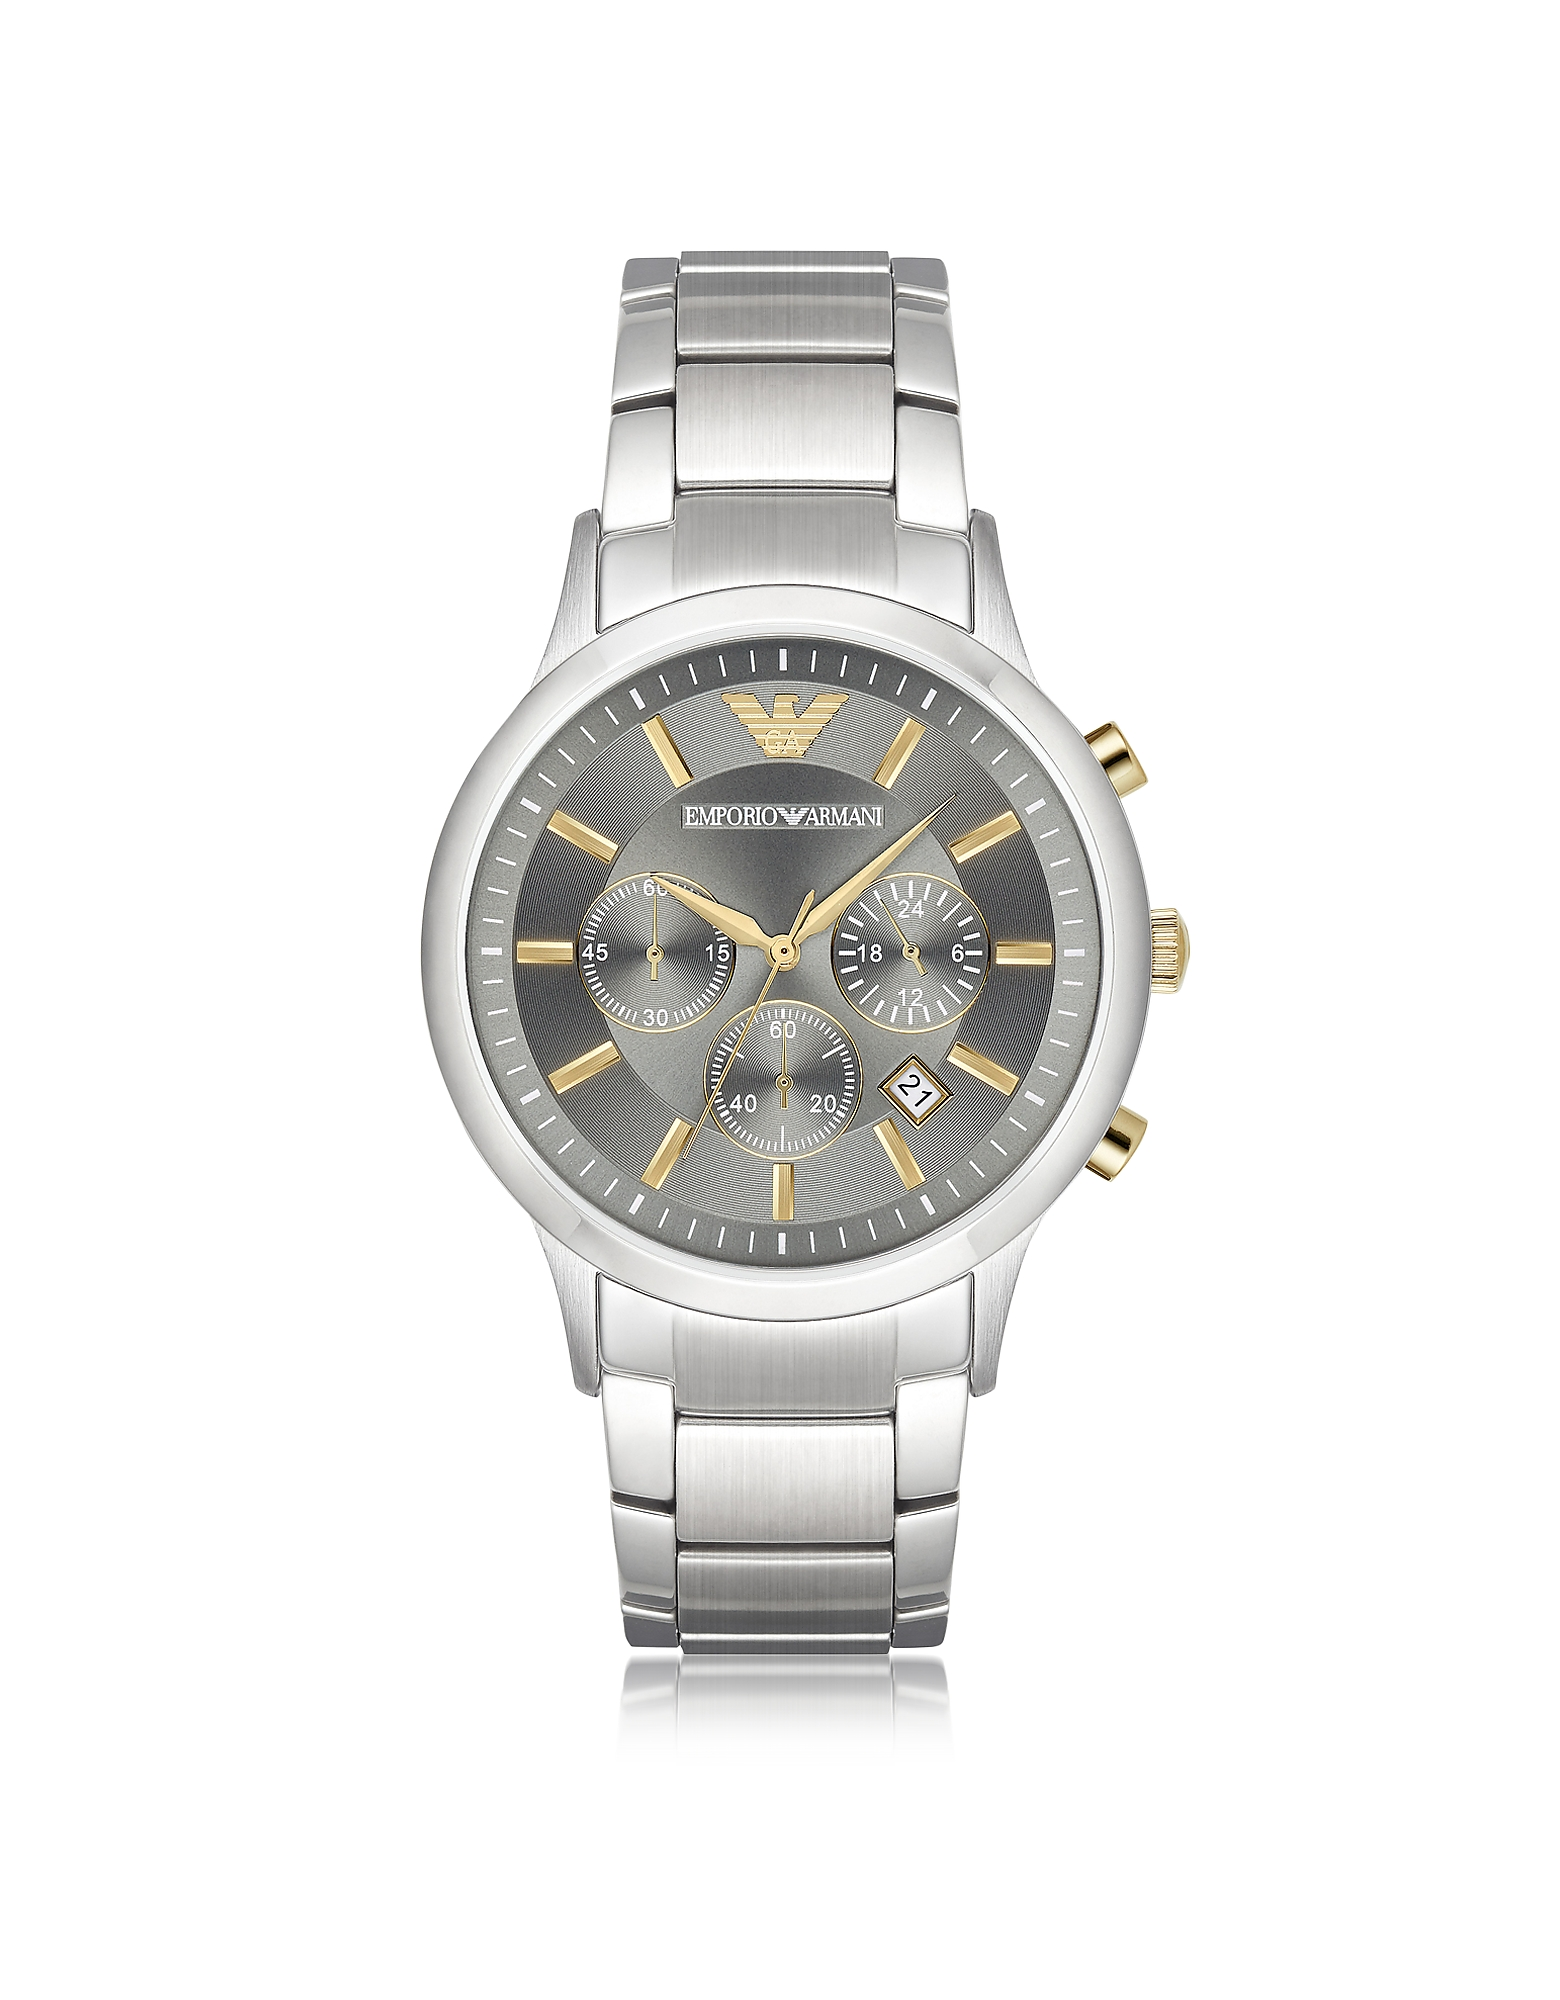 Emporio Armani Men's Watches, Stainless Steel Men's Chronograph Watch w/Gray Dial